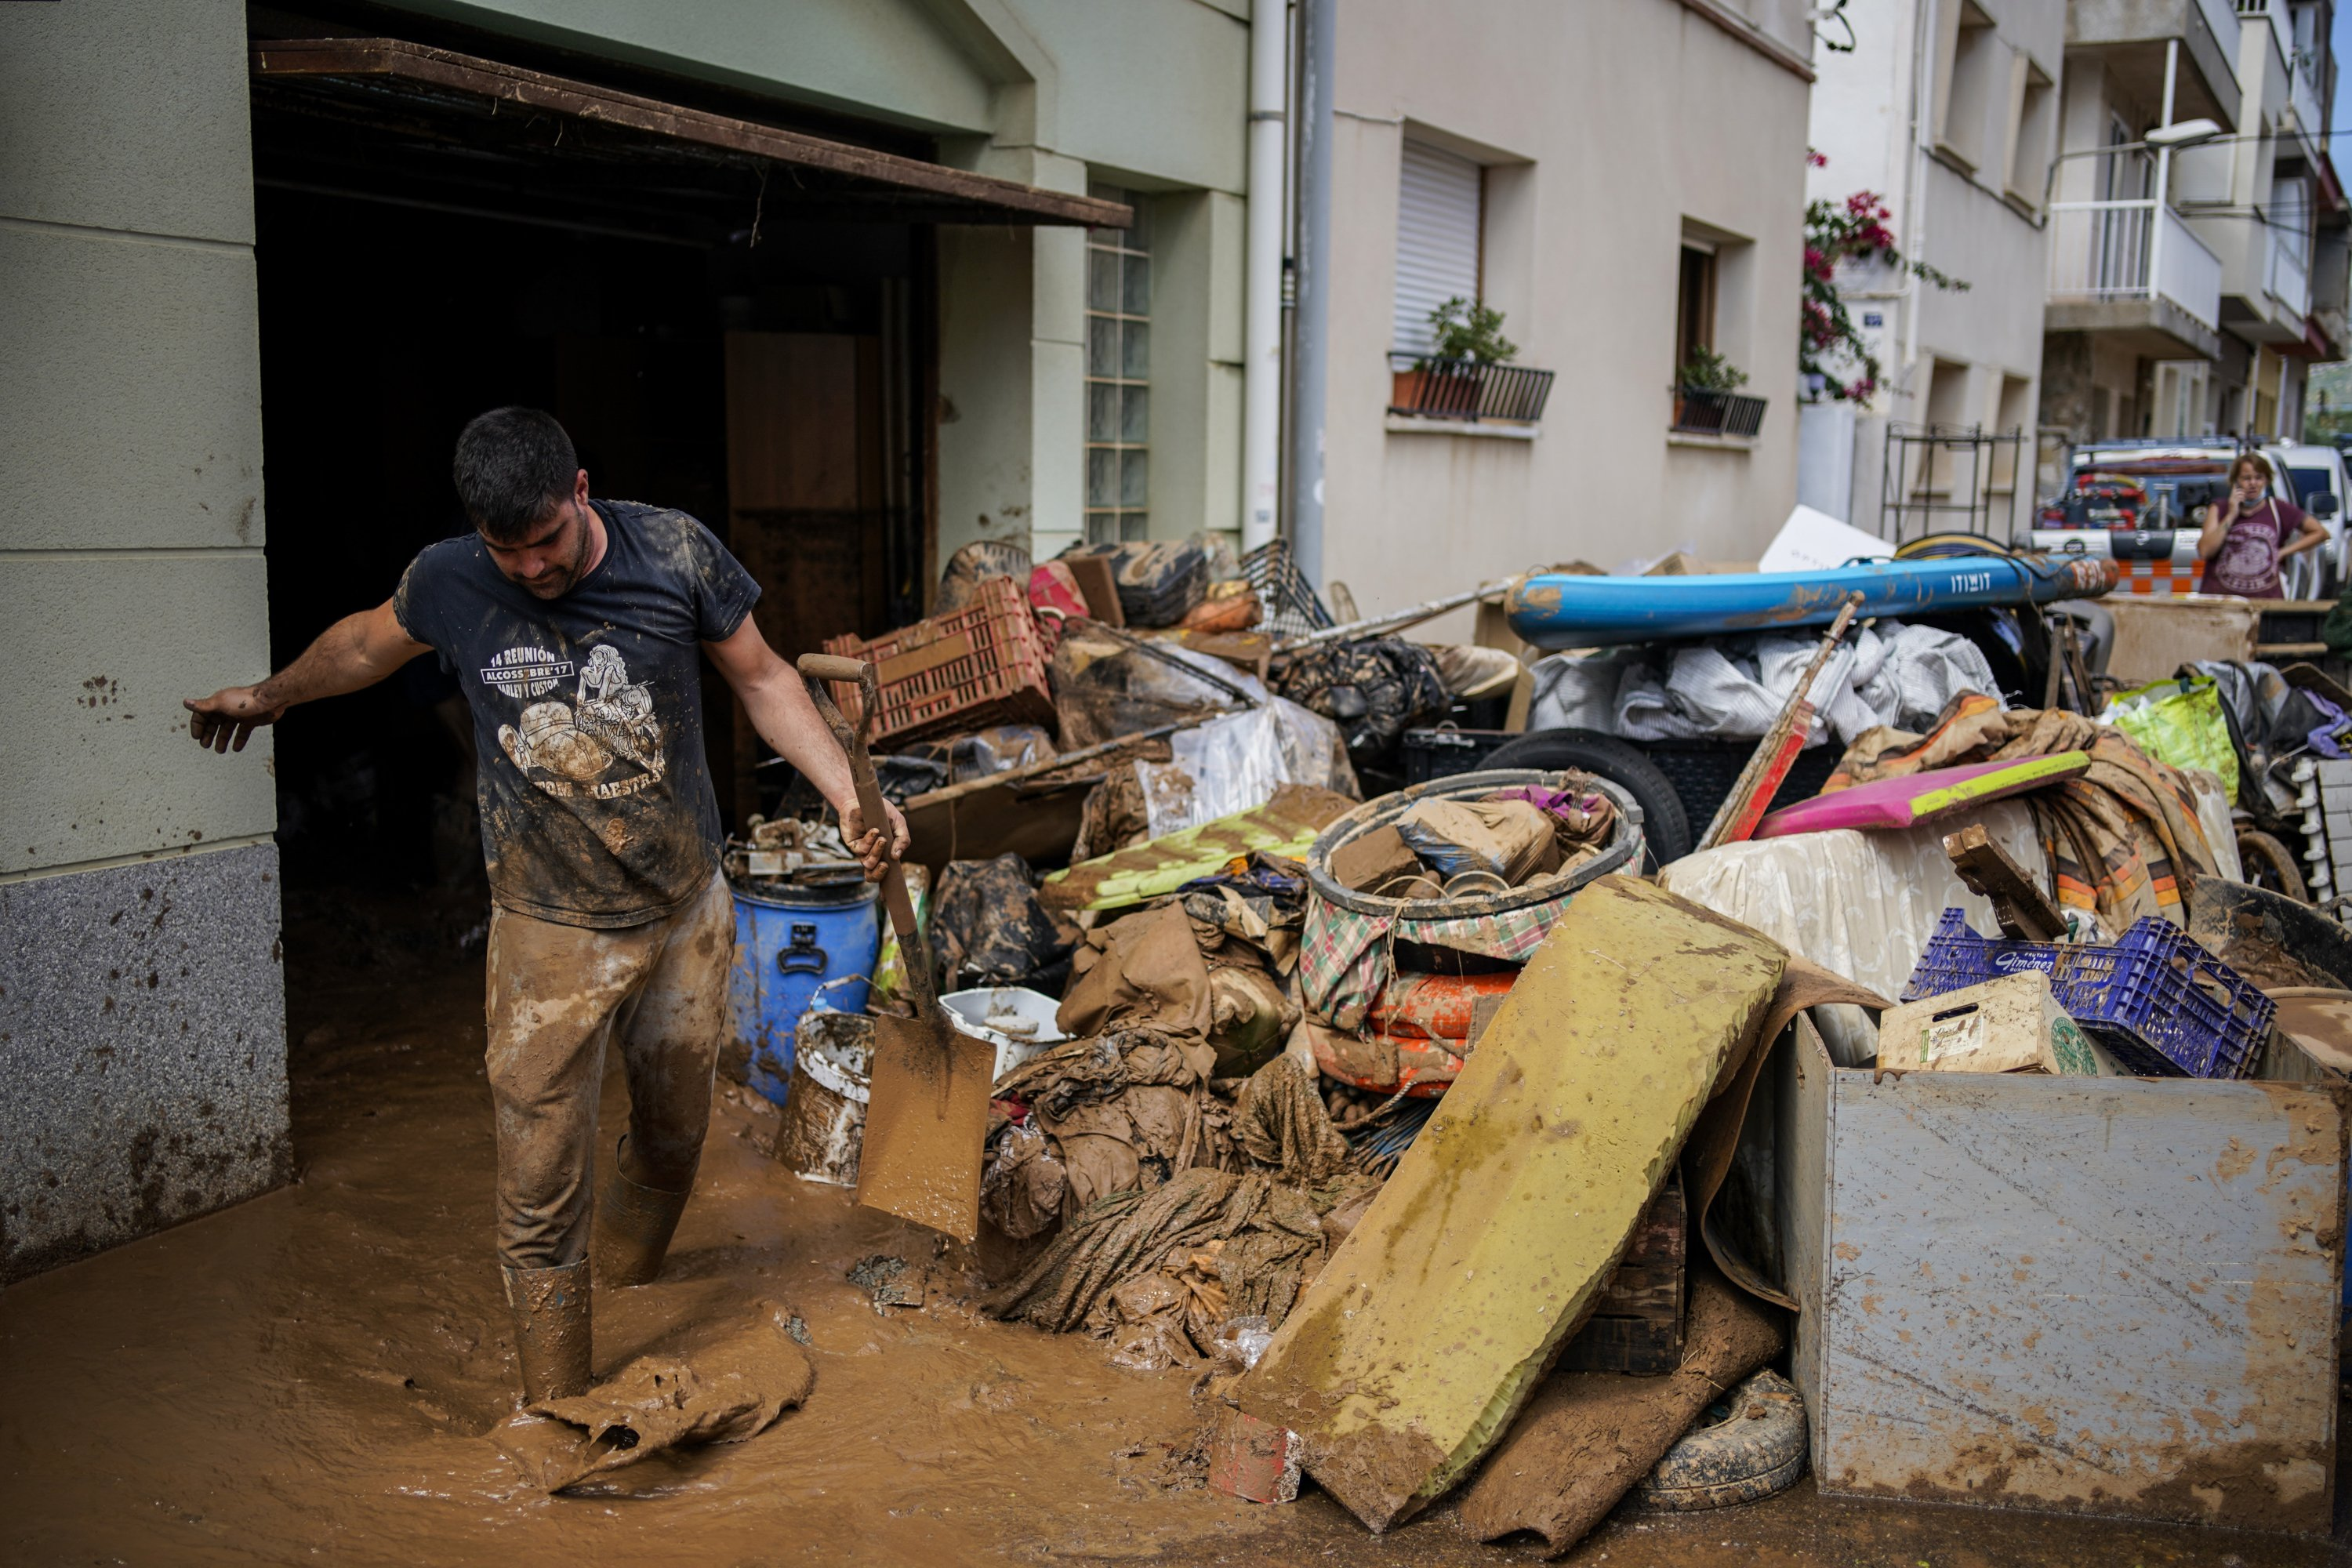 A man cleans up mud after flooding in a seaside town of Alcanar, in northeastern Spain, Sept. 2, 2021. (AP Photo)